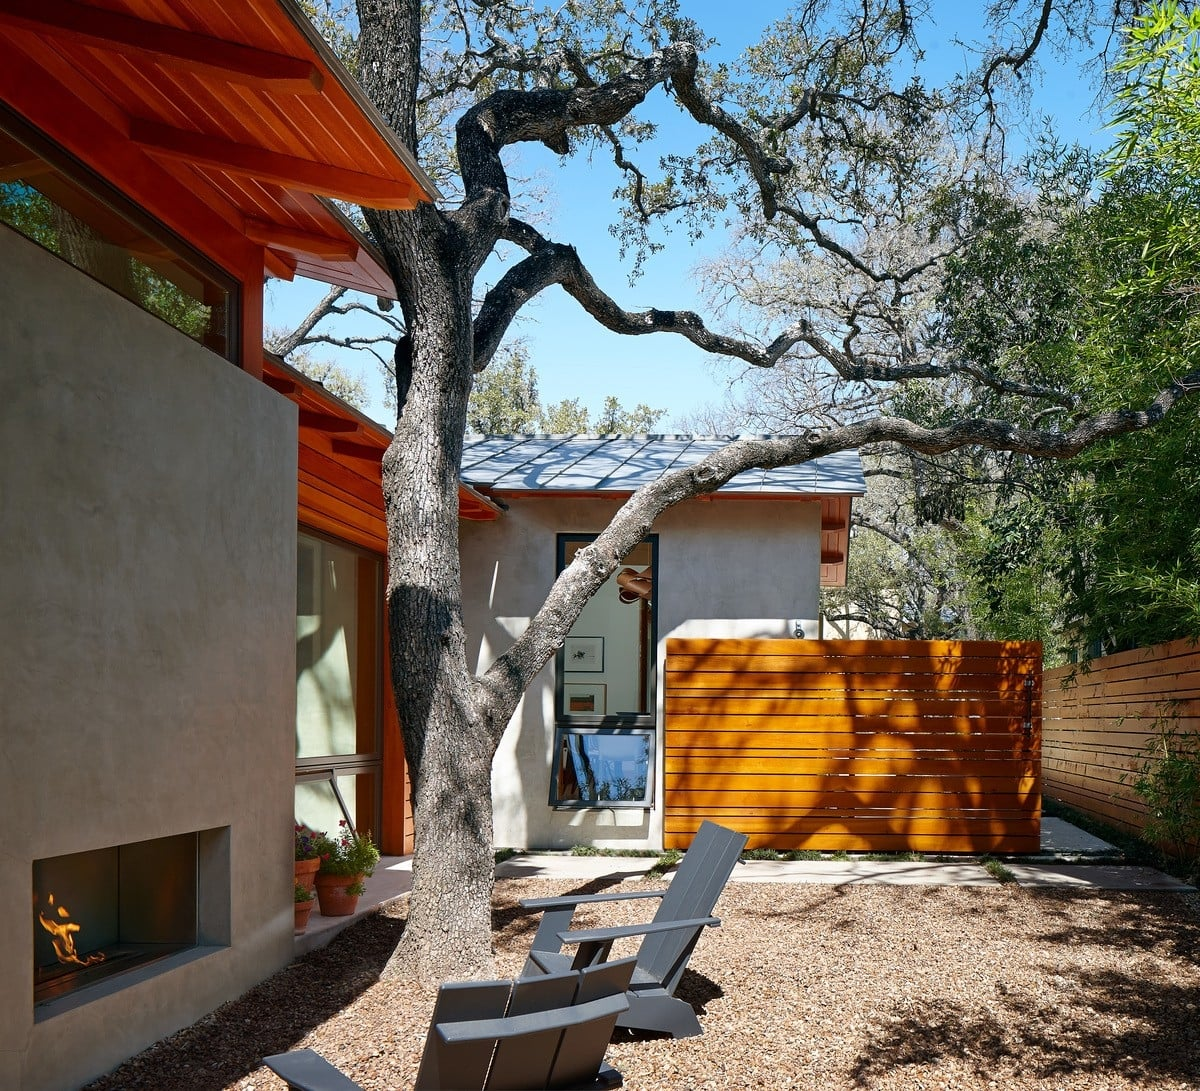 The architect built the home around an existing tree